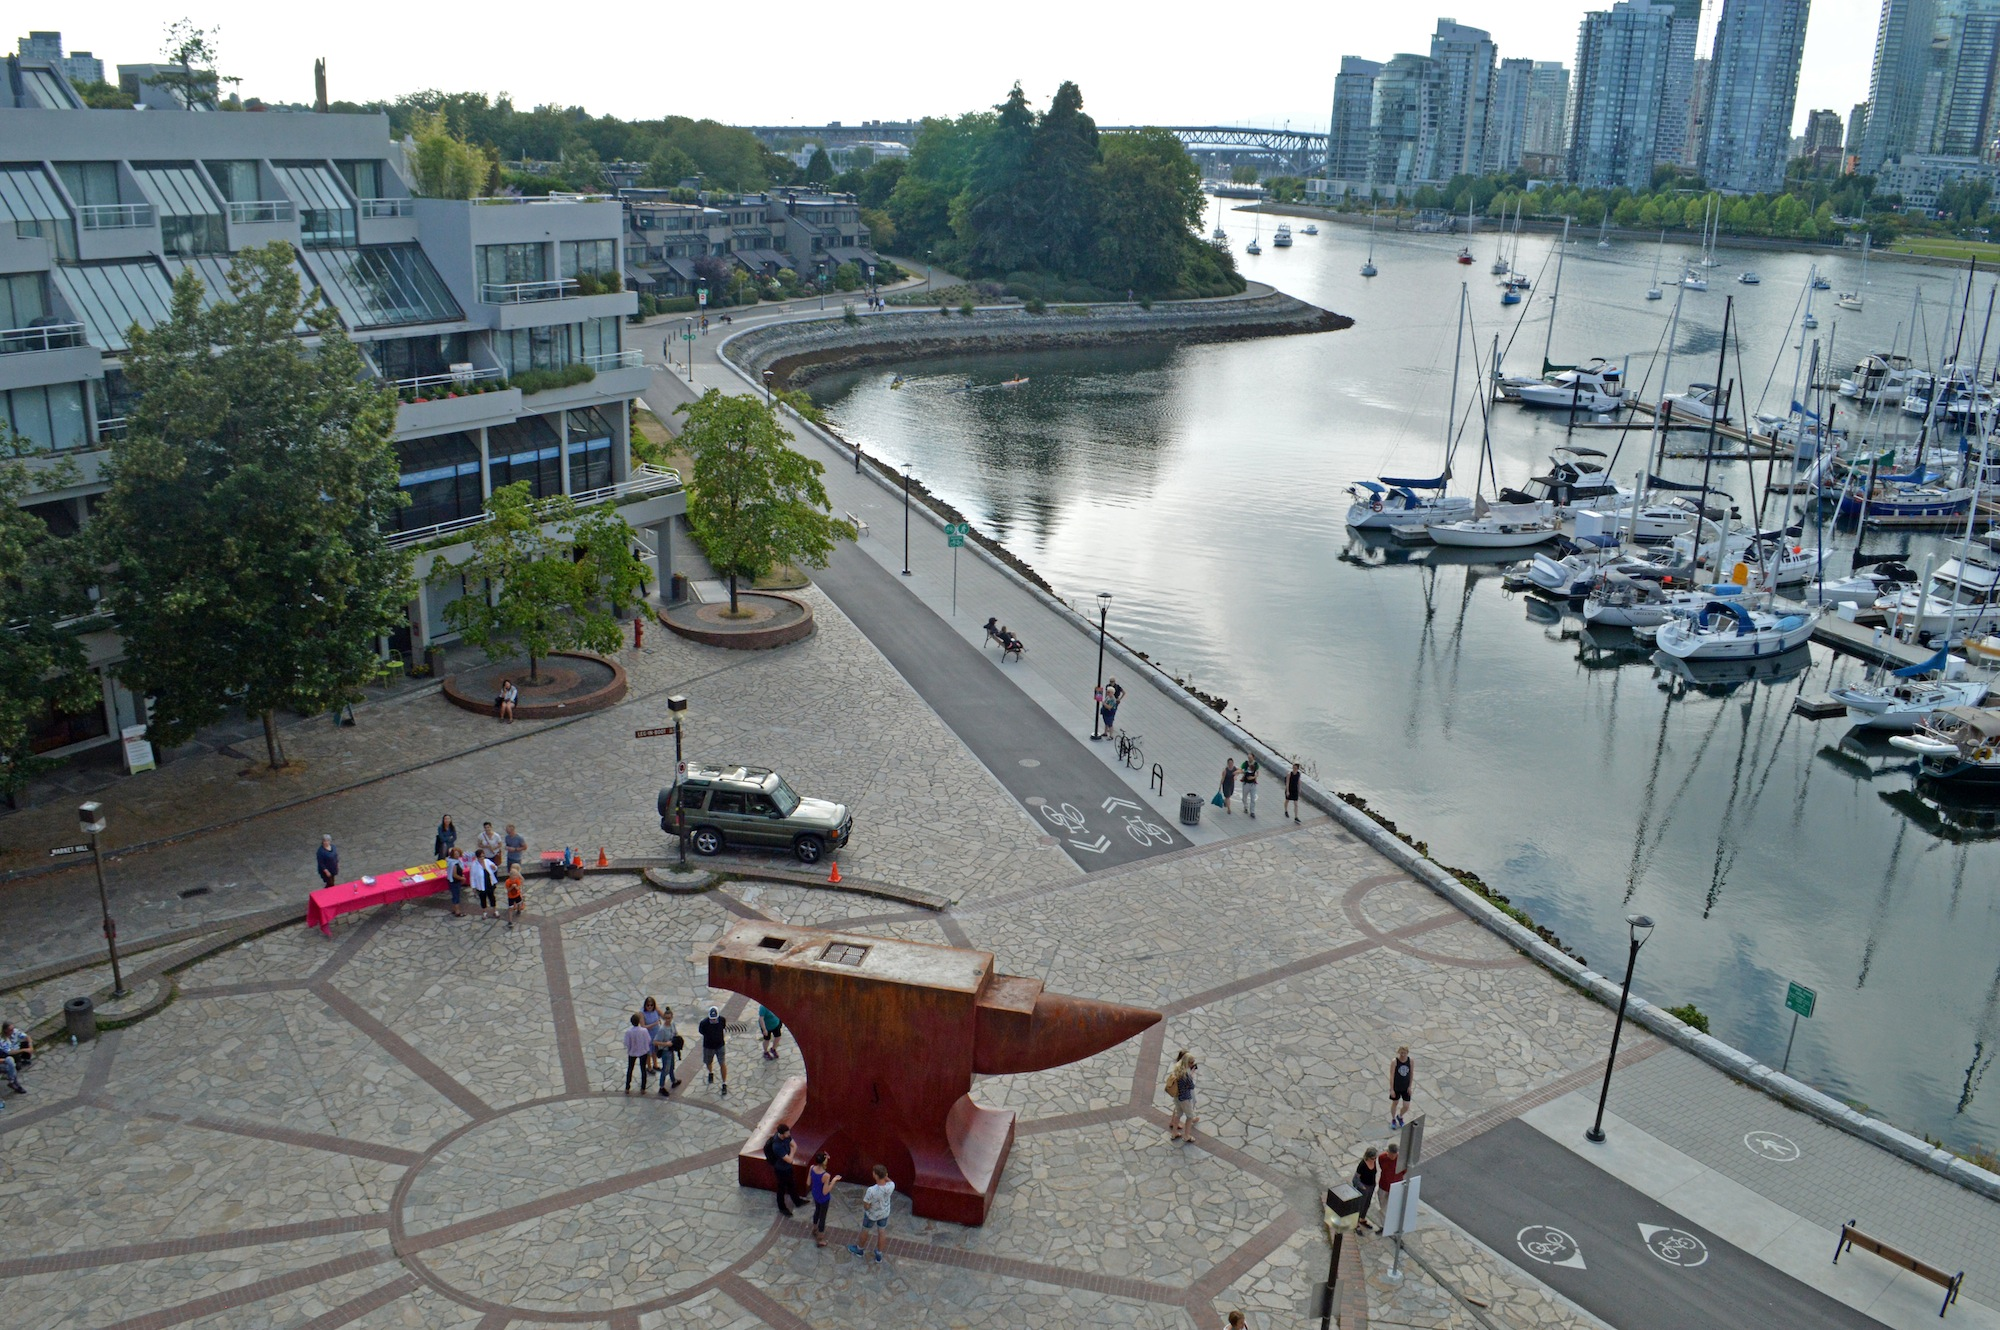 Maskull Lasserre ,  Acoustic Anvil (A Small Weight to Forge the Sea)  and False Creek, Vancouver, BC, 2018, Steel, electronics, solar panels, 25 x 13 x 9 feet, Image courtesy of Maskull Lasserre